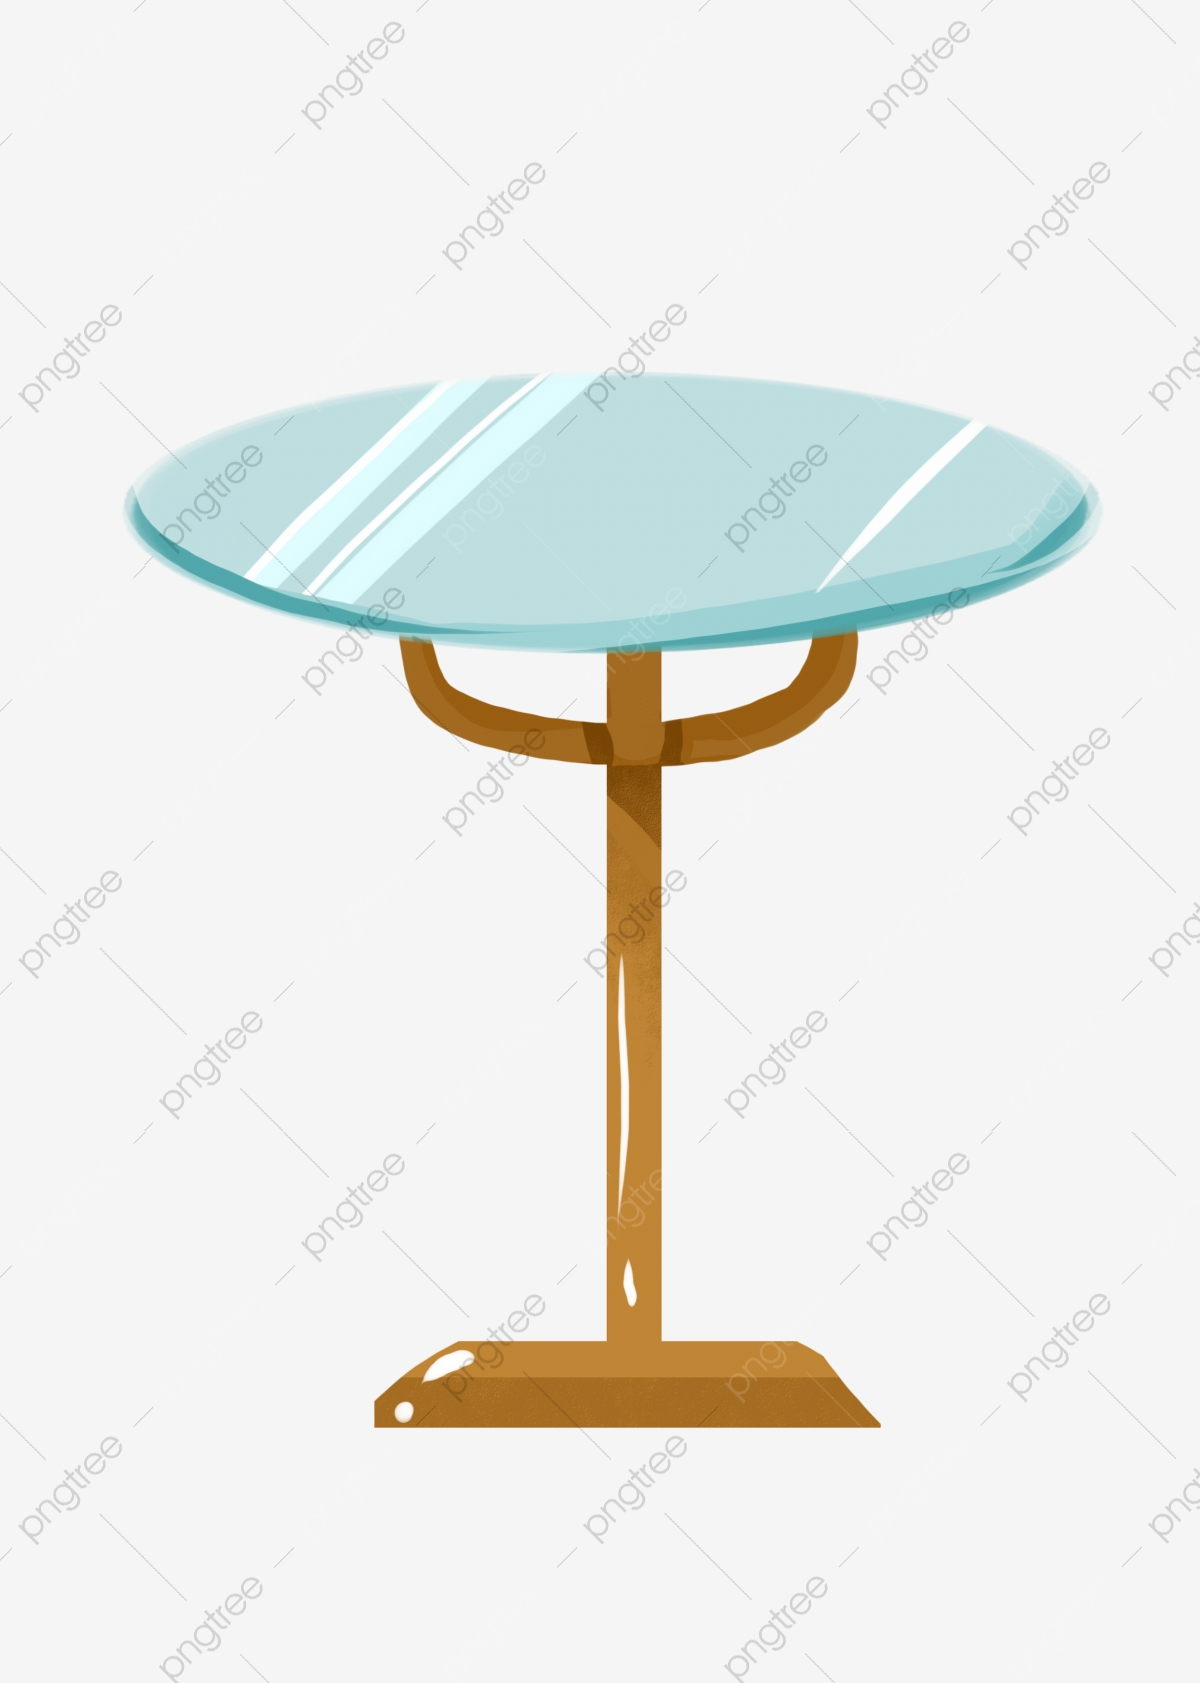 Round Glass Small Table Illustration Round Small Table Blue